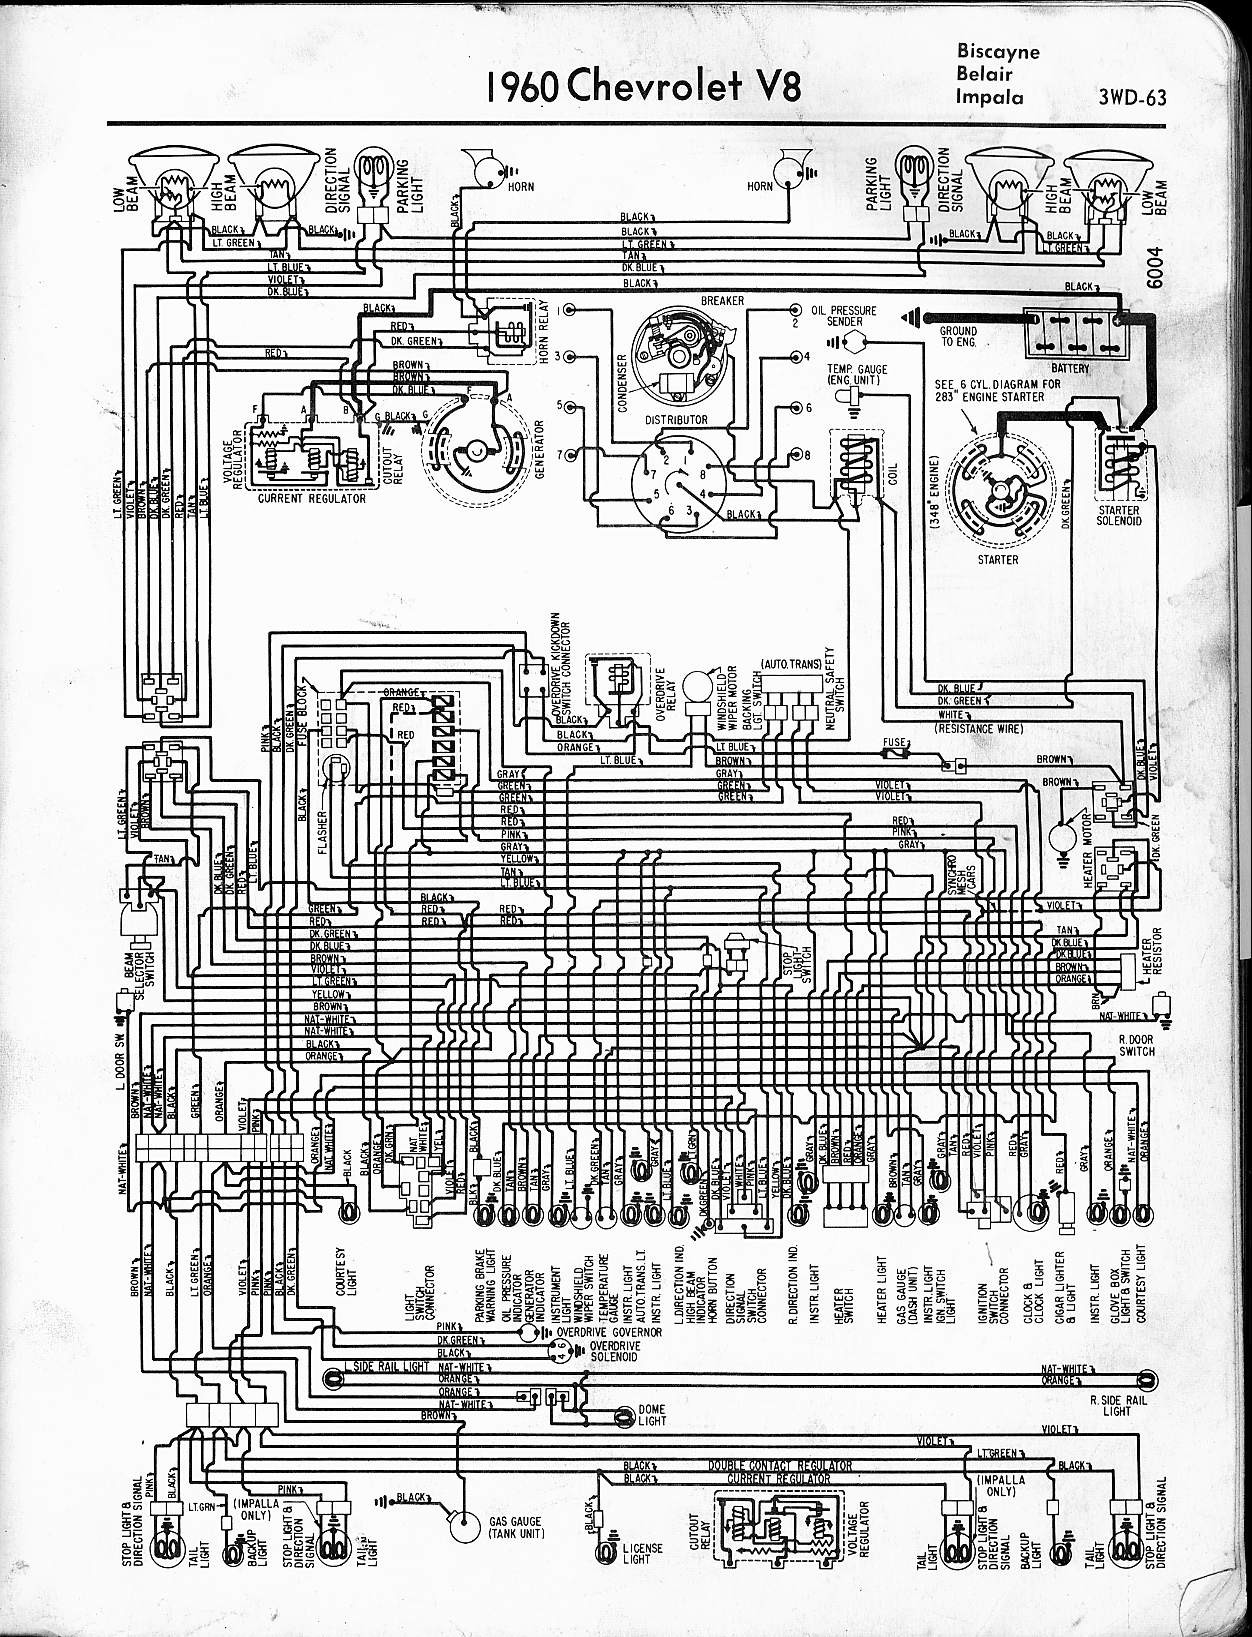 Wiring Diagram 1973 Chevrolet Impala Simple Electronic Circuits Vega Chevy Truck My Rh Detoxicrecenze Com Headlight V6